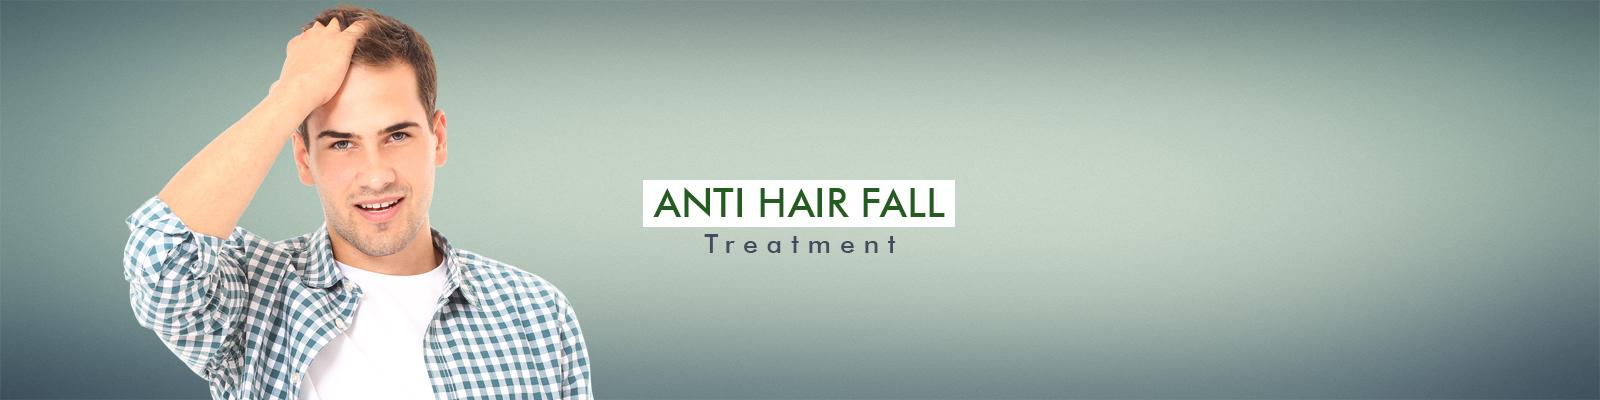 Best Anti Hair Fall Treatment & Best Hair Loss Solutions